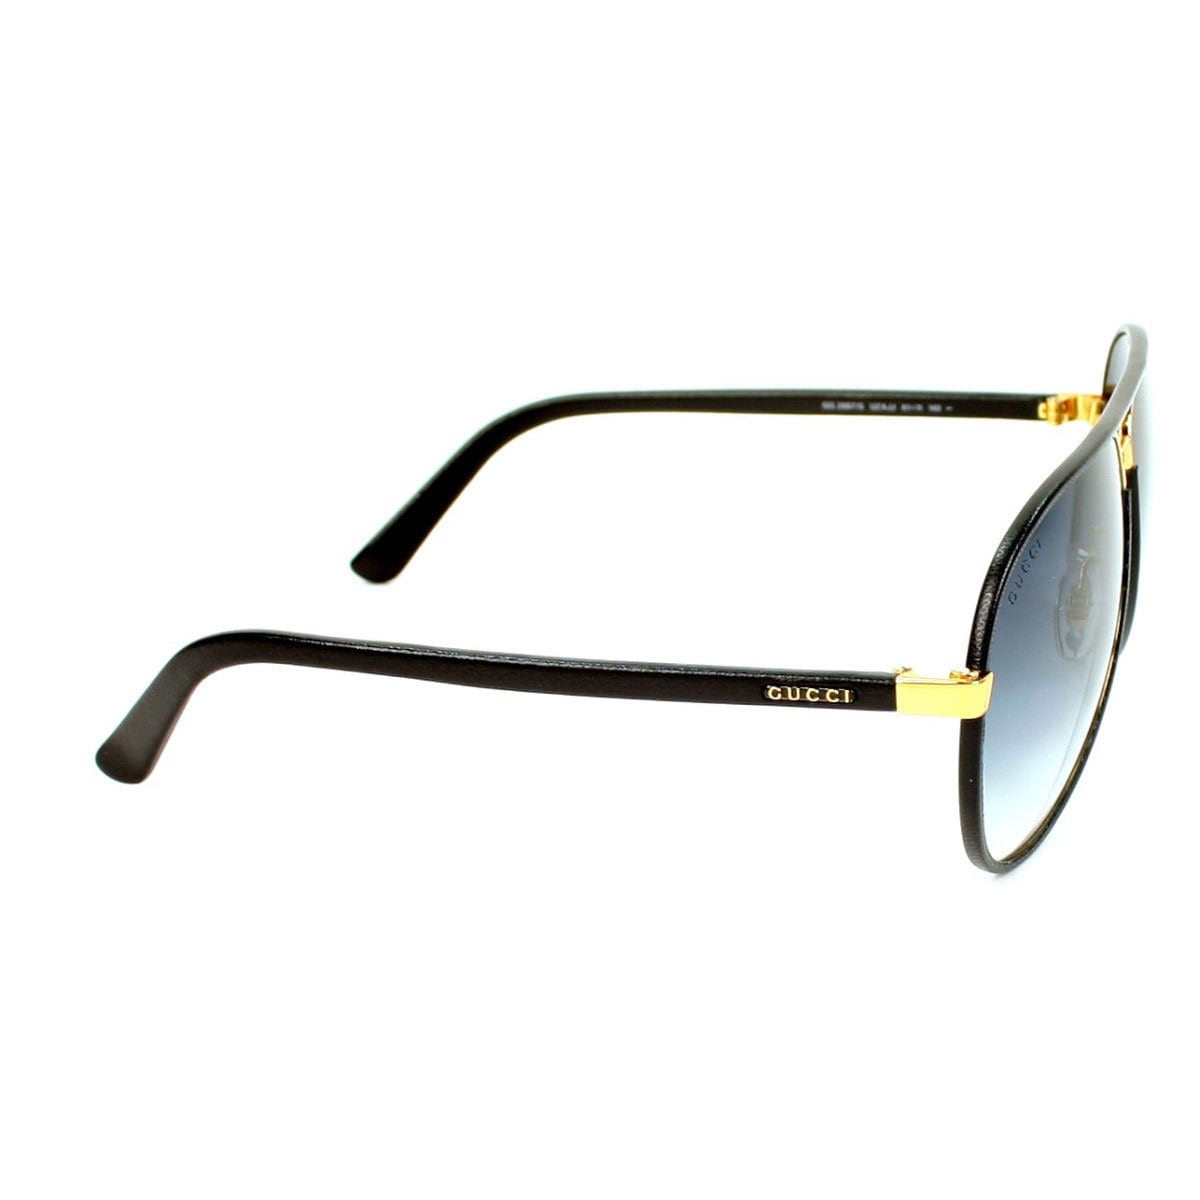 d2475f73d30 Shop Gucci Men s GG 2887 S Metal Aviator Sunglasses - Black - Ships To  Canada - Overstock - 9997431